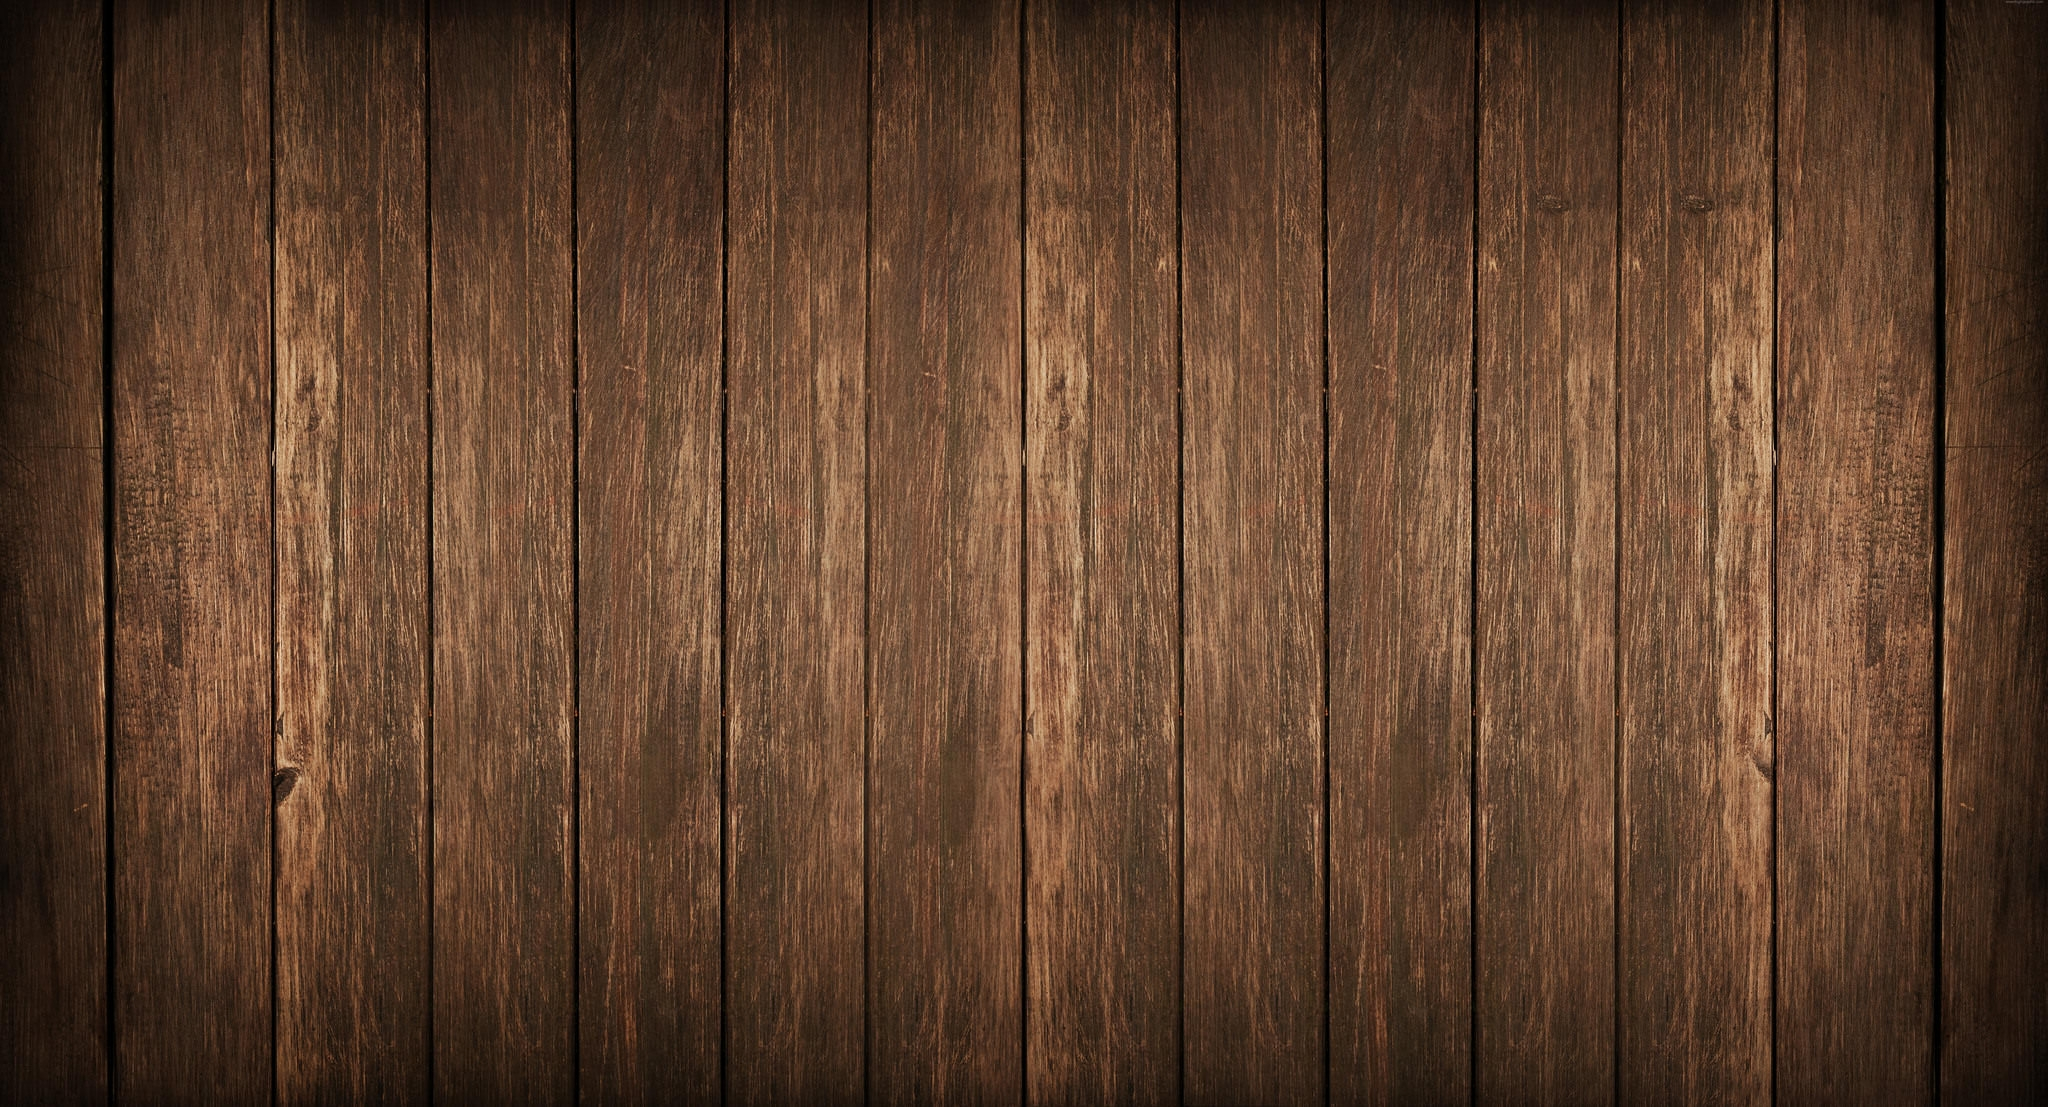 20+ Old Wood Backgrounds - PSD, Vector EPS, JPG Download